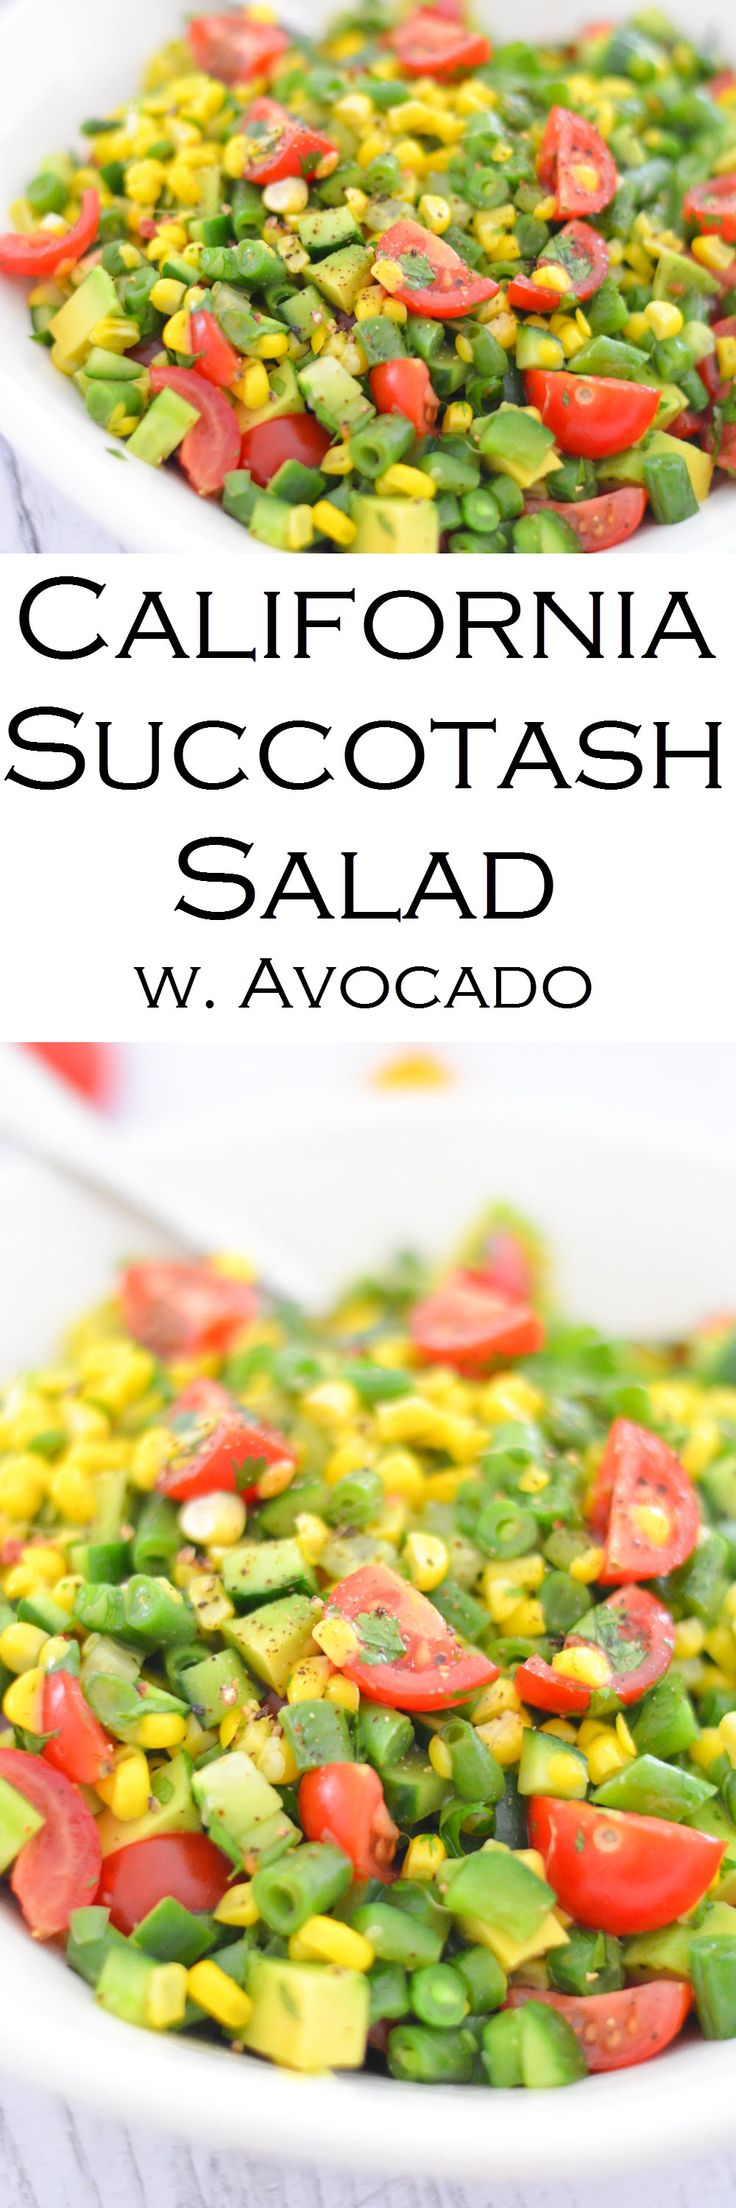 A simple and delicious avocado succotash recipe with all the California flavors you know and love. A great summer salad with in season ingredients.